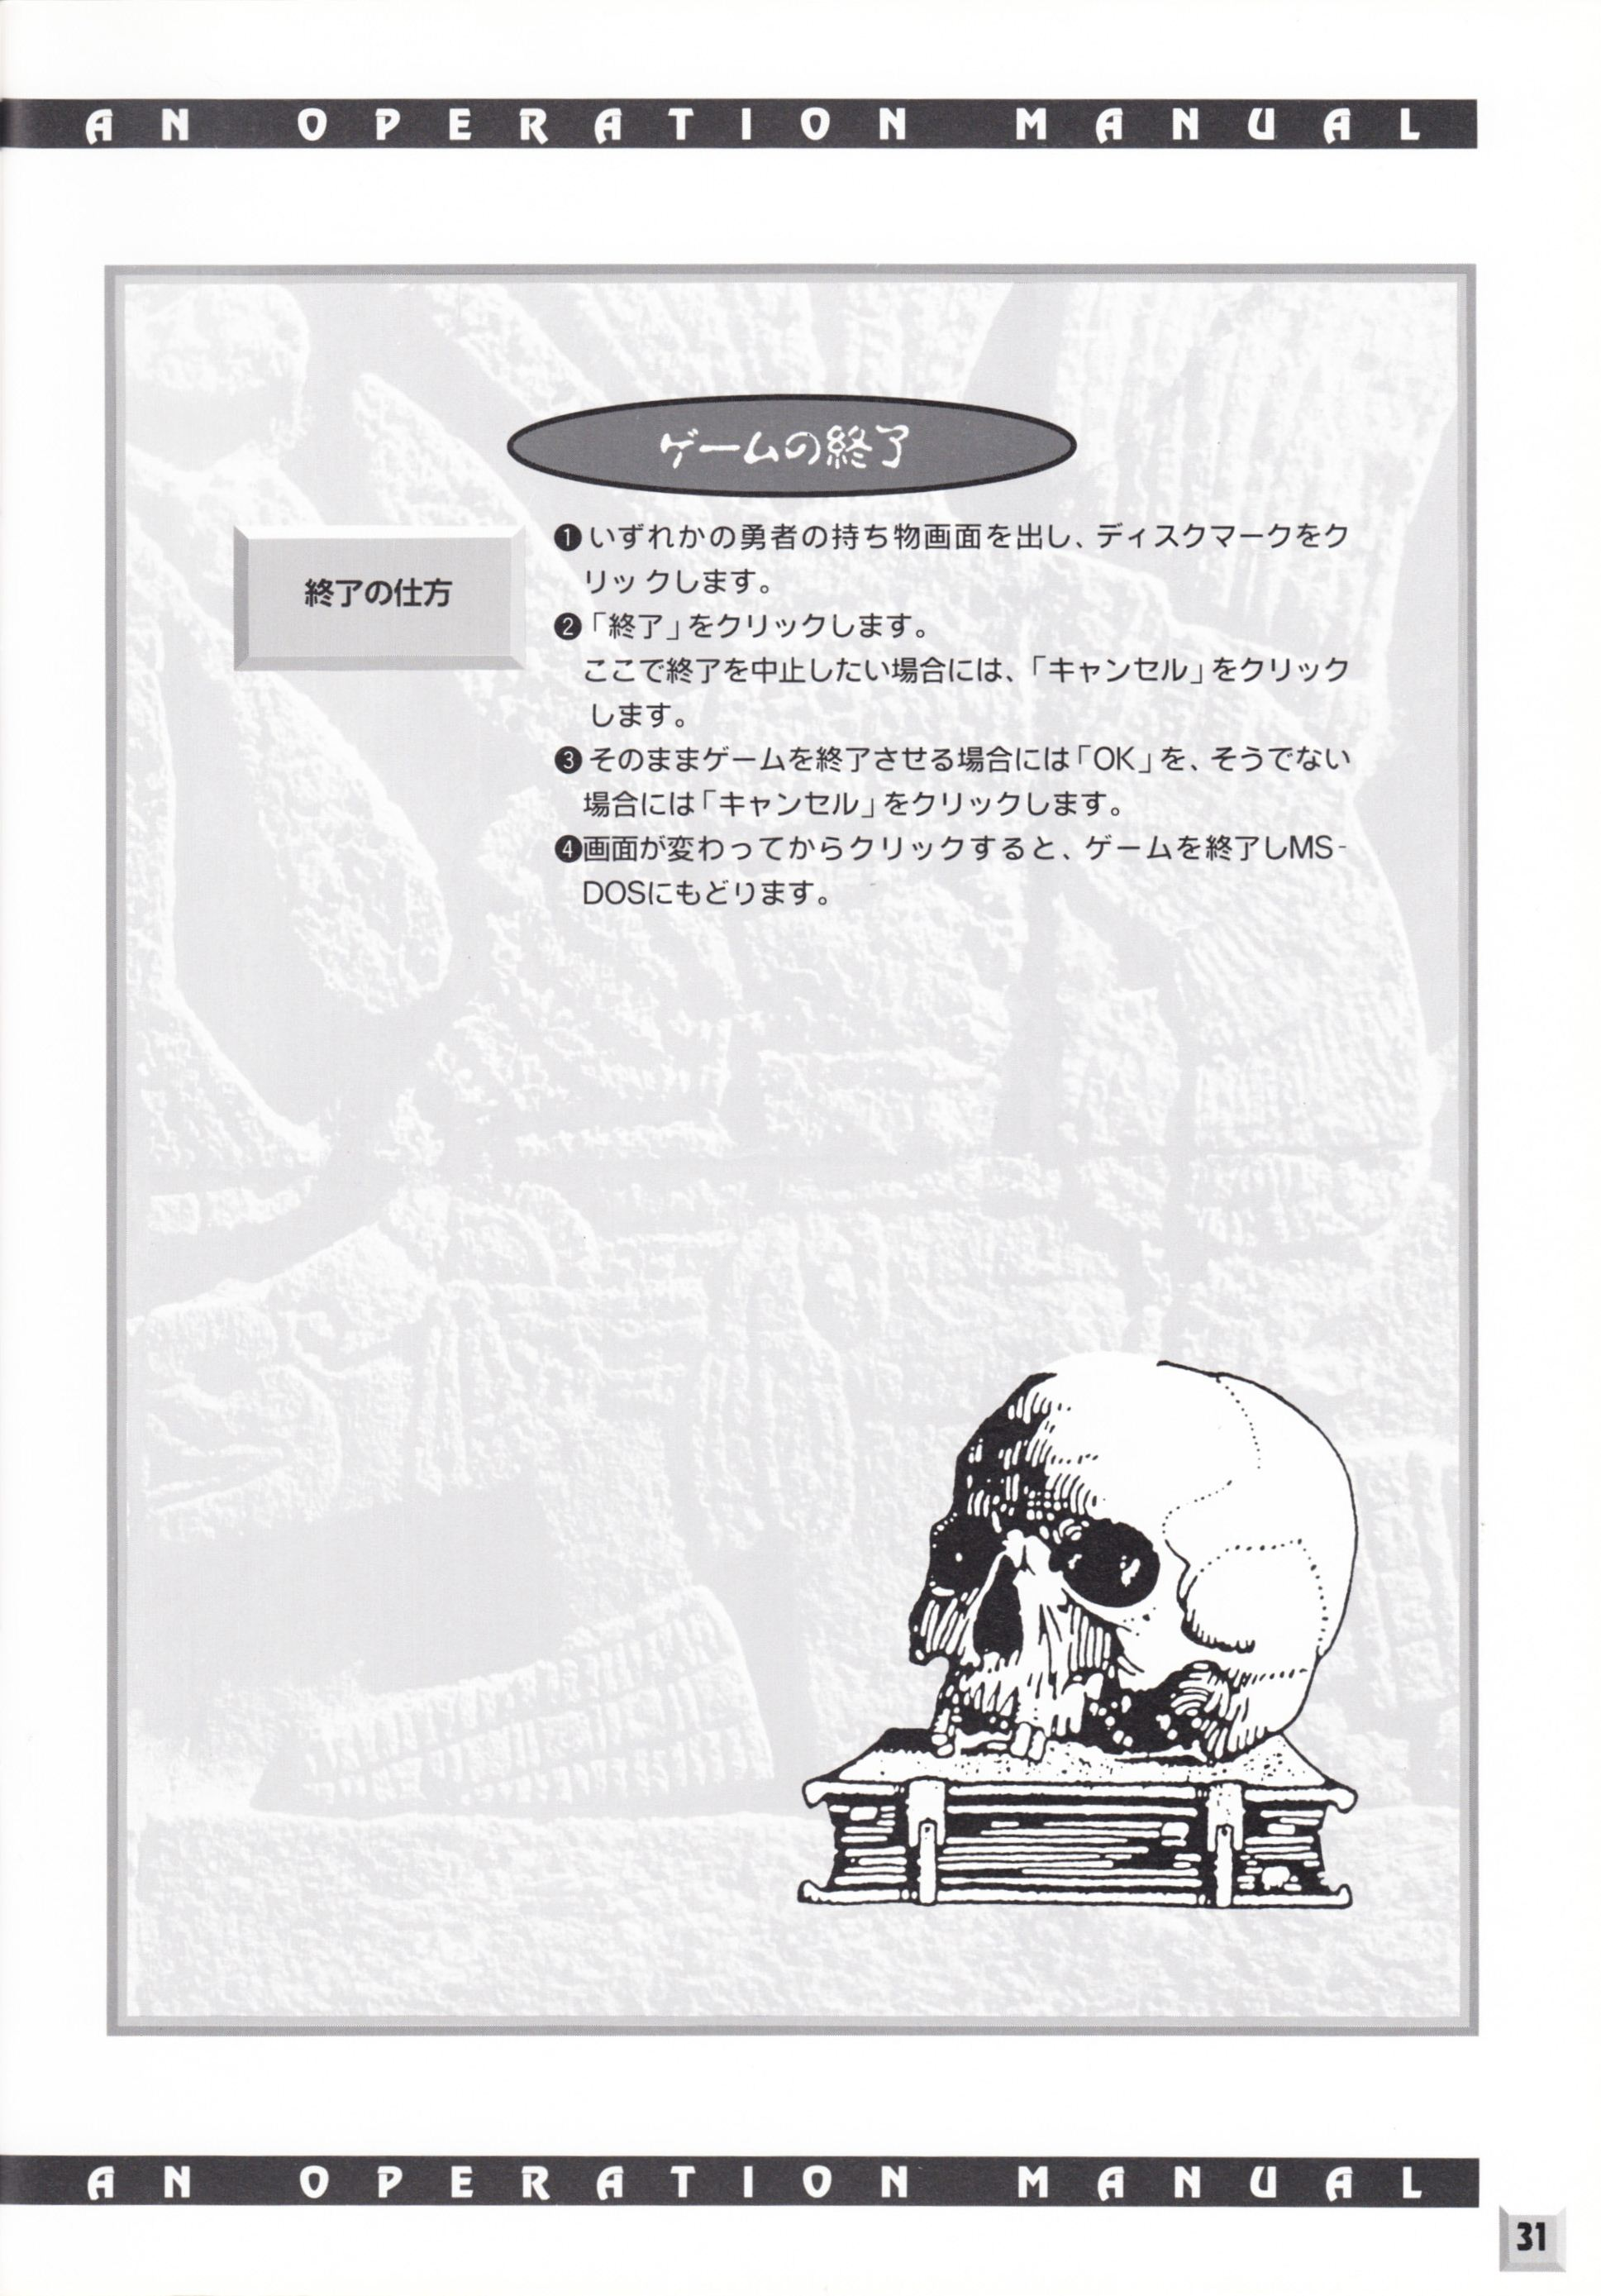 Game - Dungeon Master II - JP - PC-9821 - An Operation Manual - Page 033 - Scan